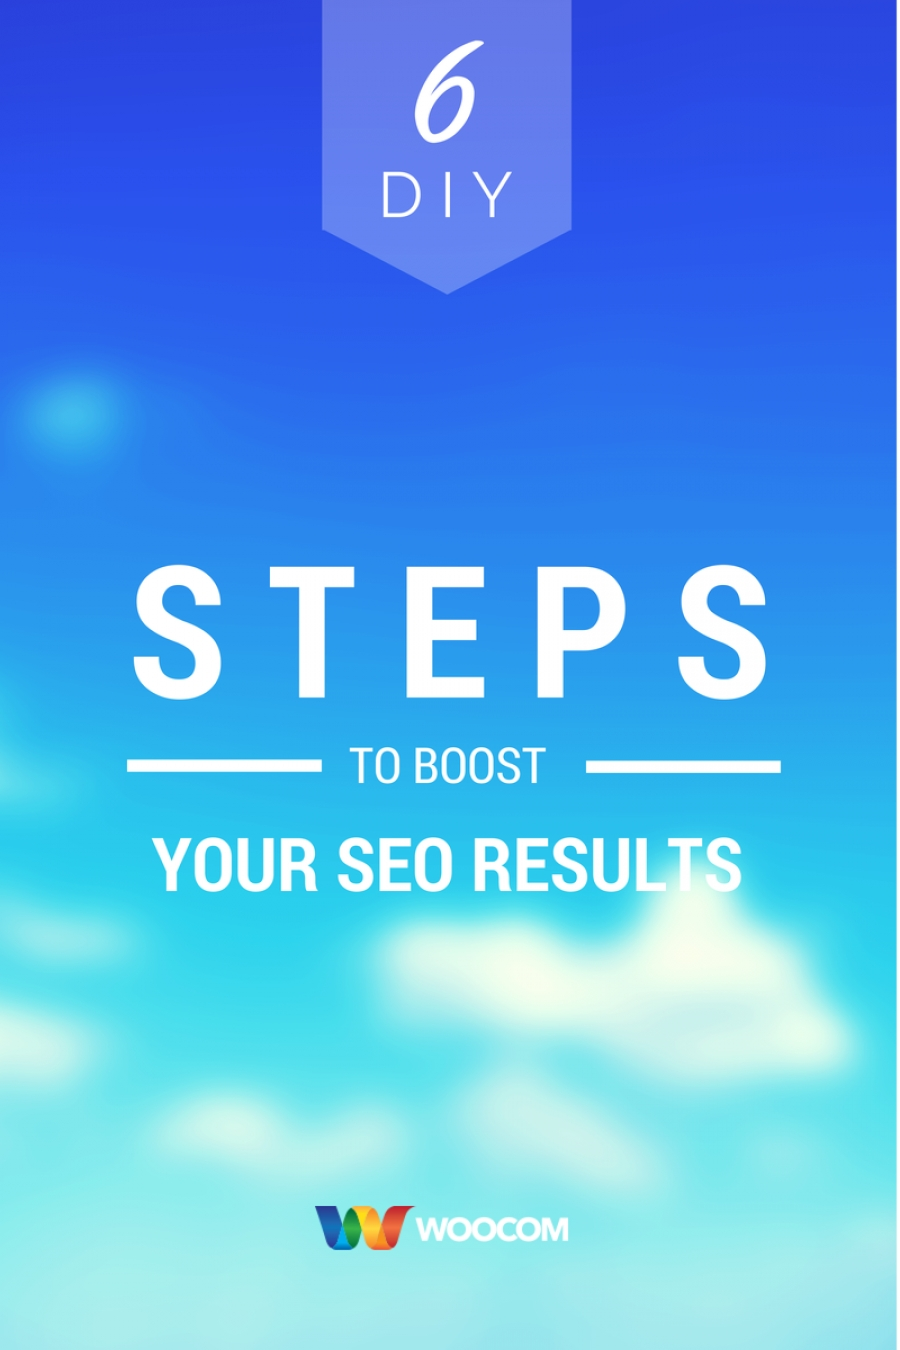 6 DIY Steps to Boost Your SEO Results